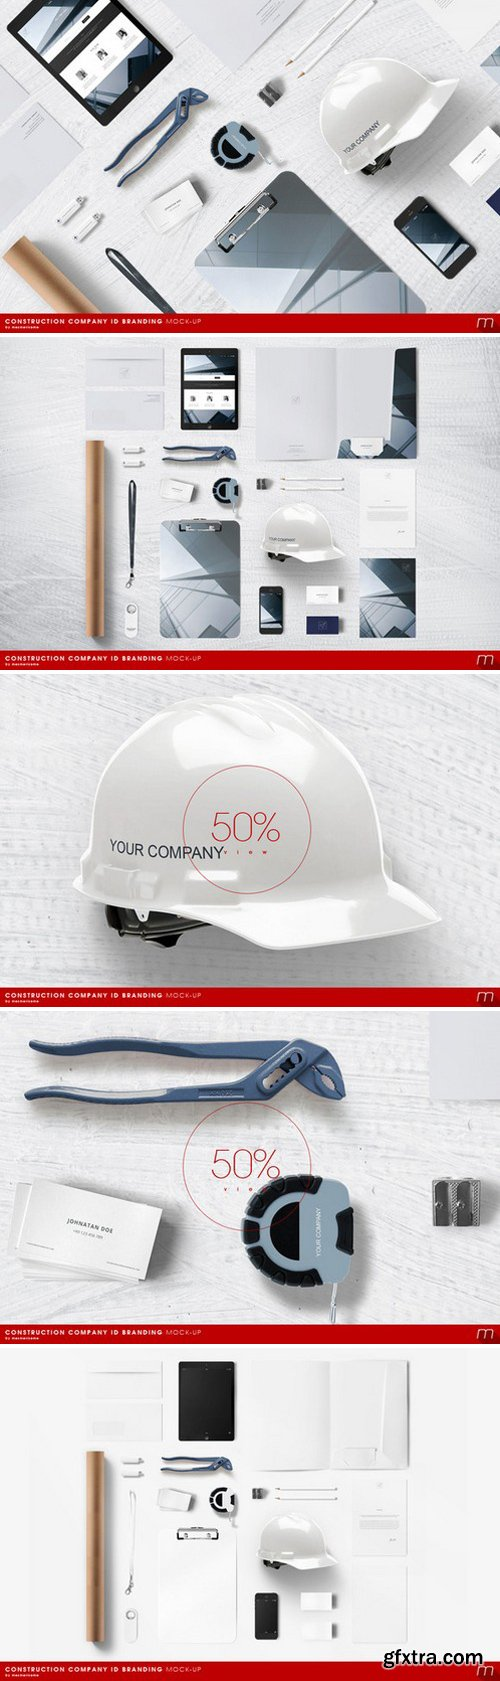 CM - Construction Company Branding Mock-up 335573